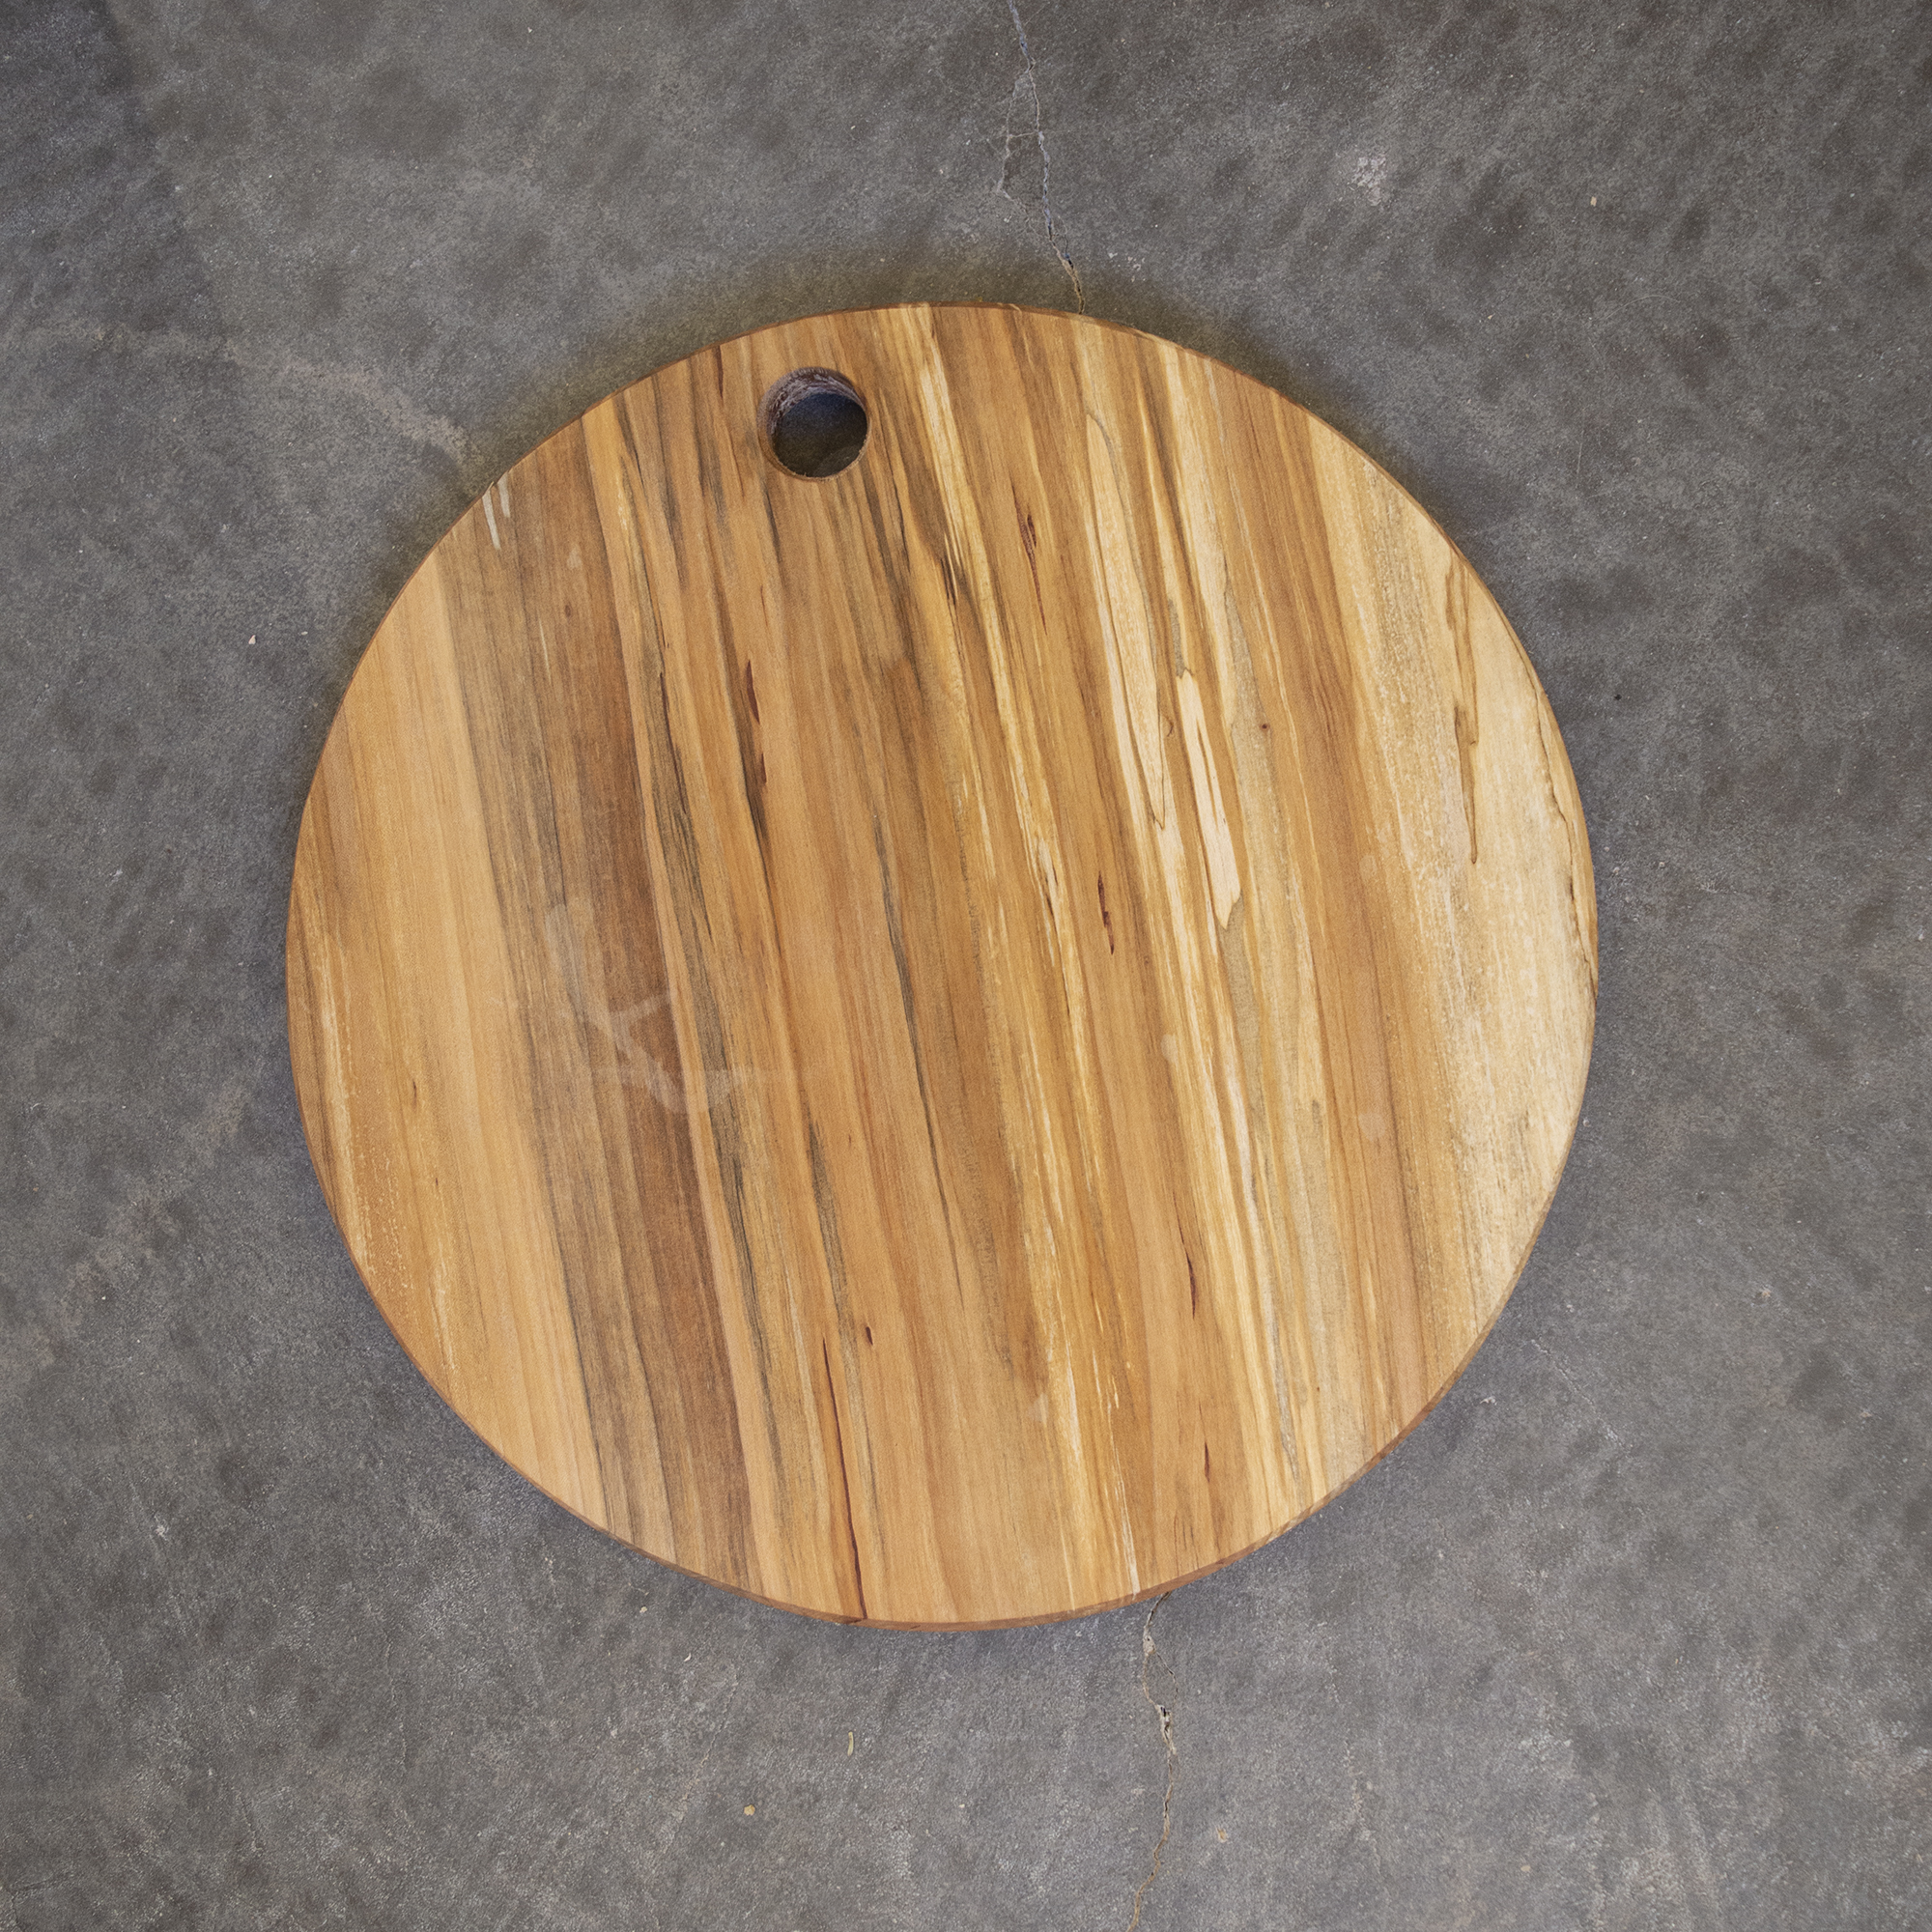 Example of finished product. Spalted maple, 14 inch diameter